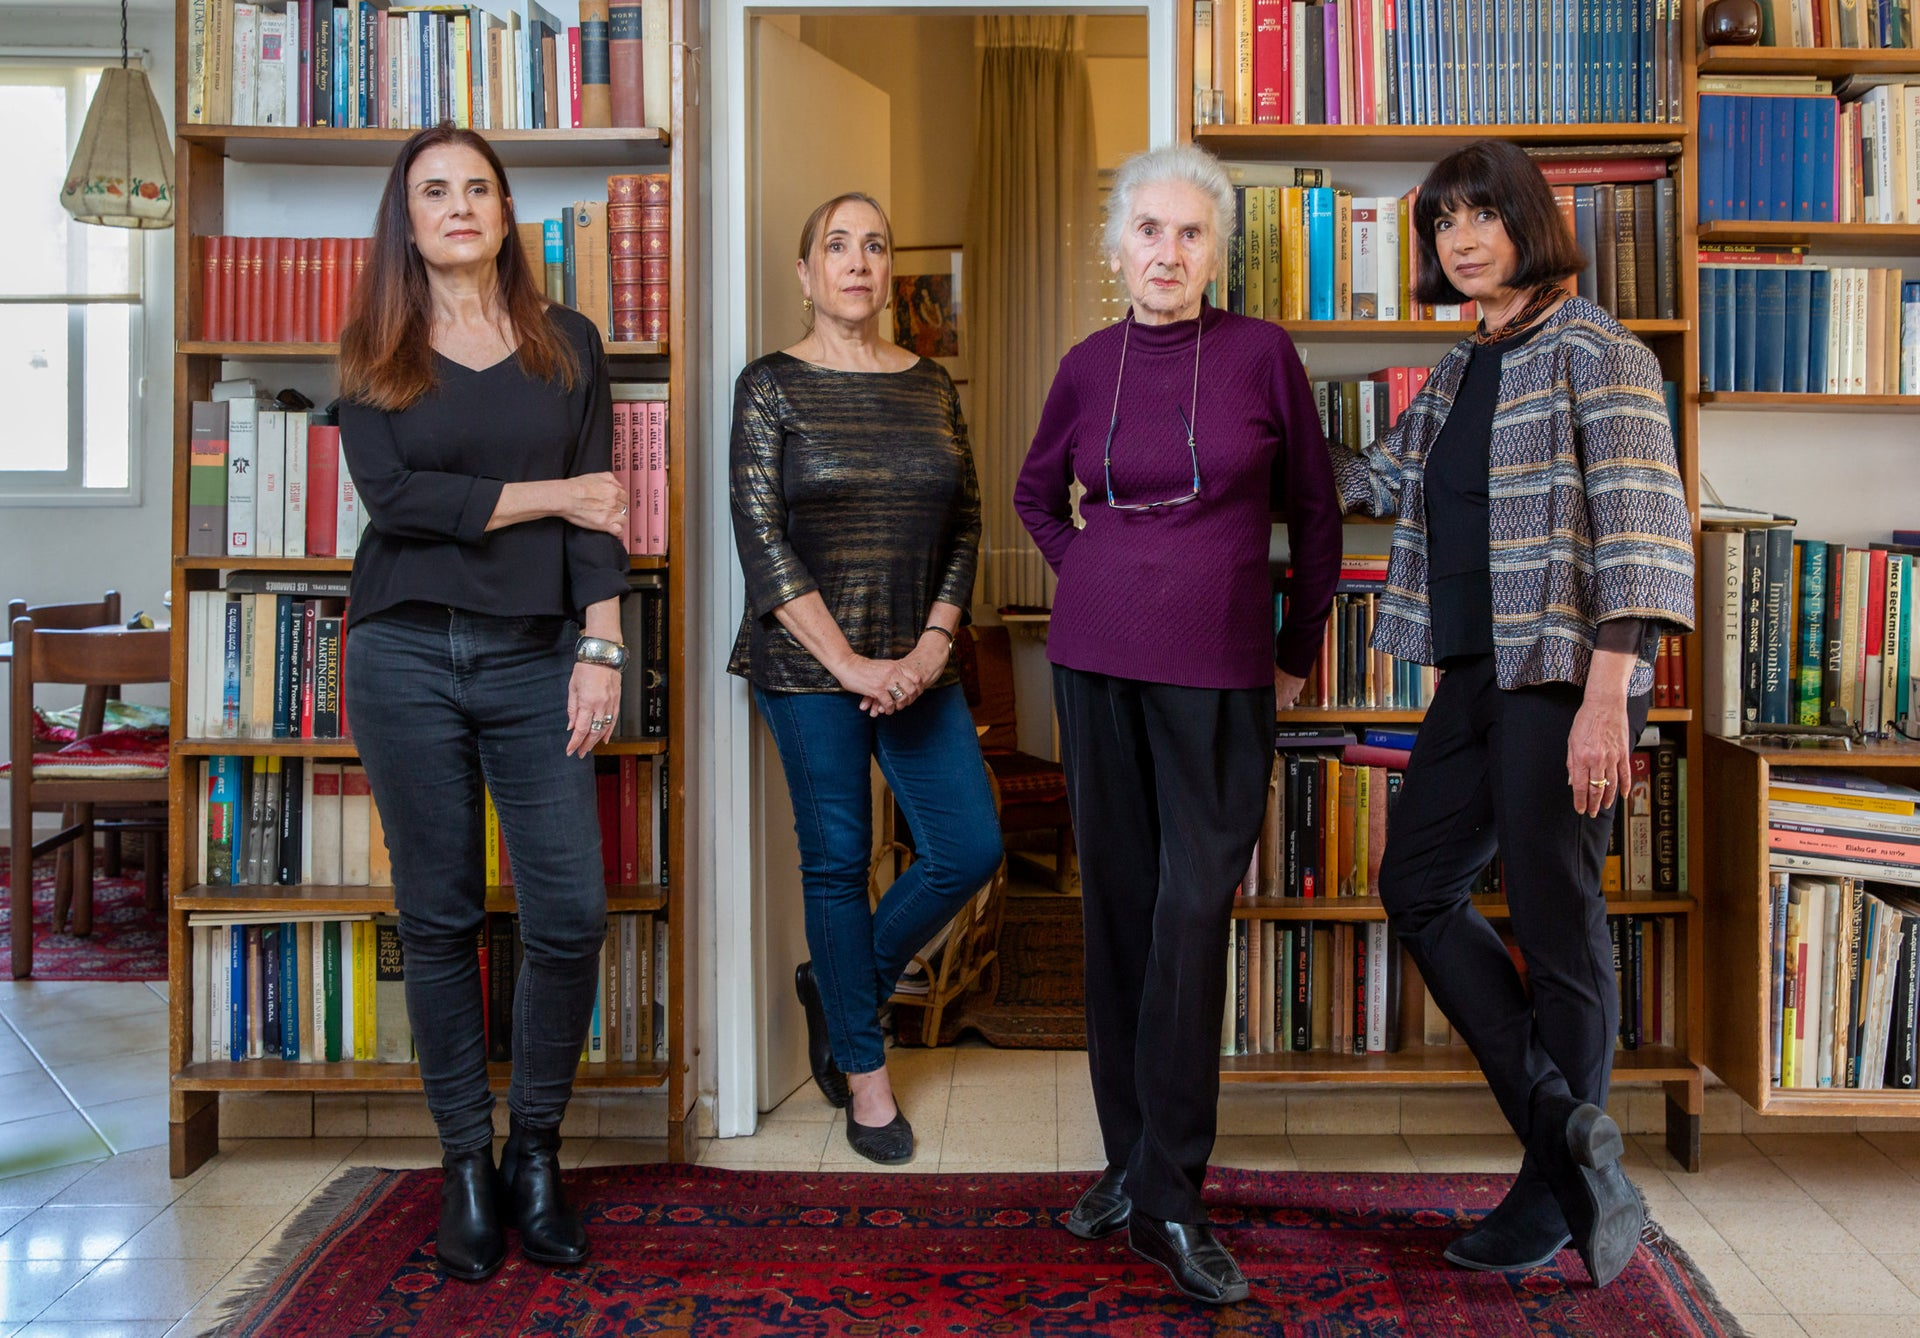 From left: Noa Gouri-Guberman, Yael Gouri, Aliza Gouri and Hamutal Gouri.